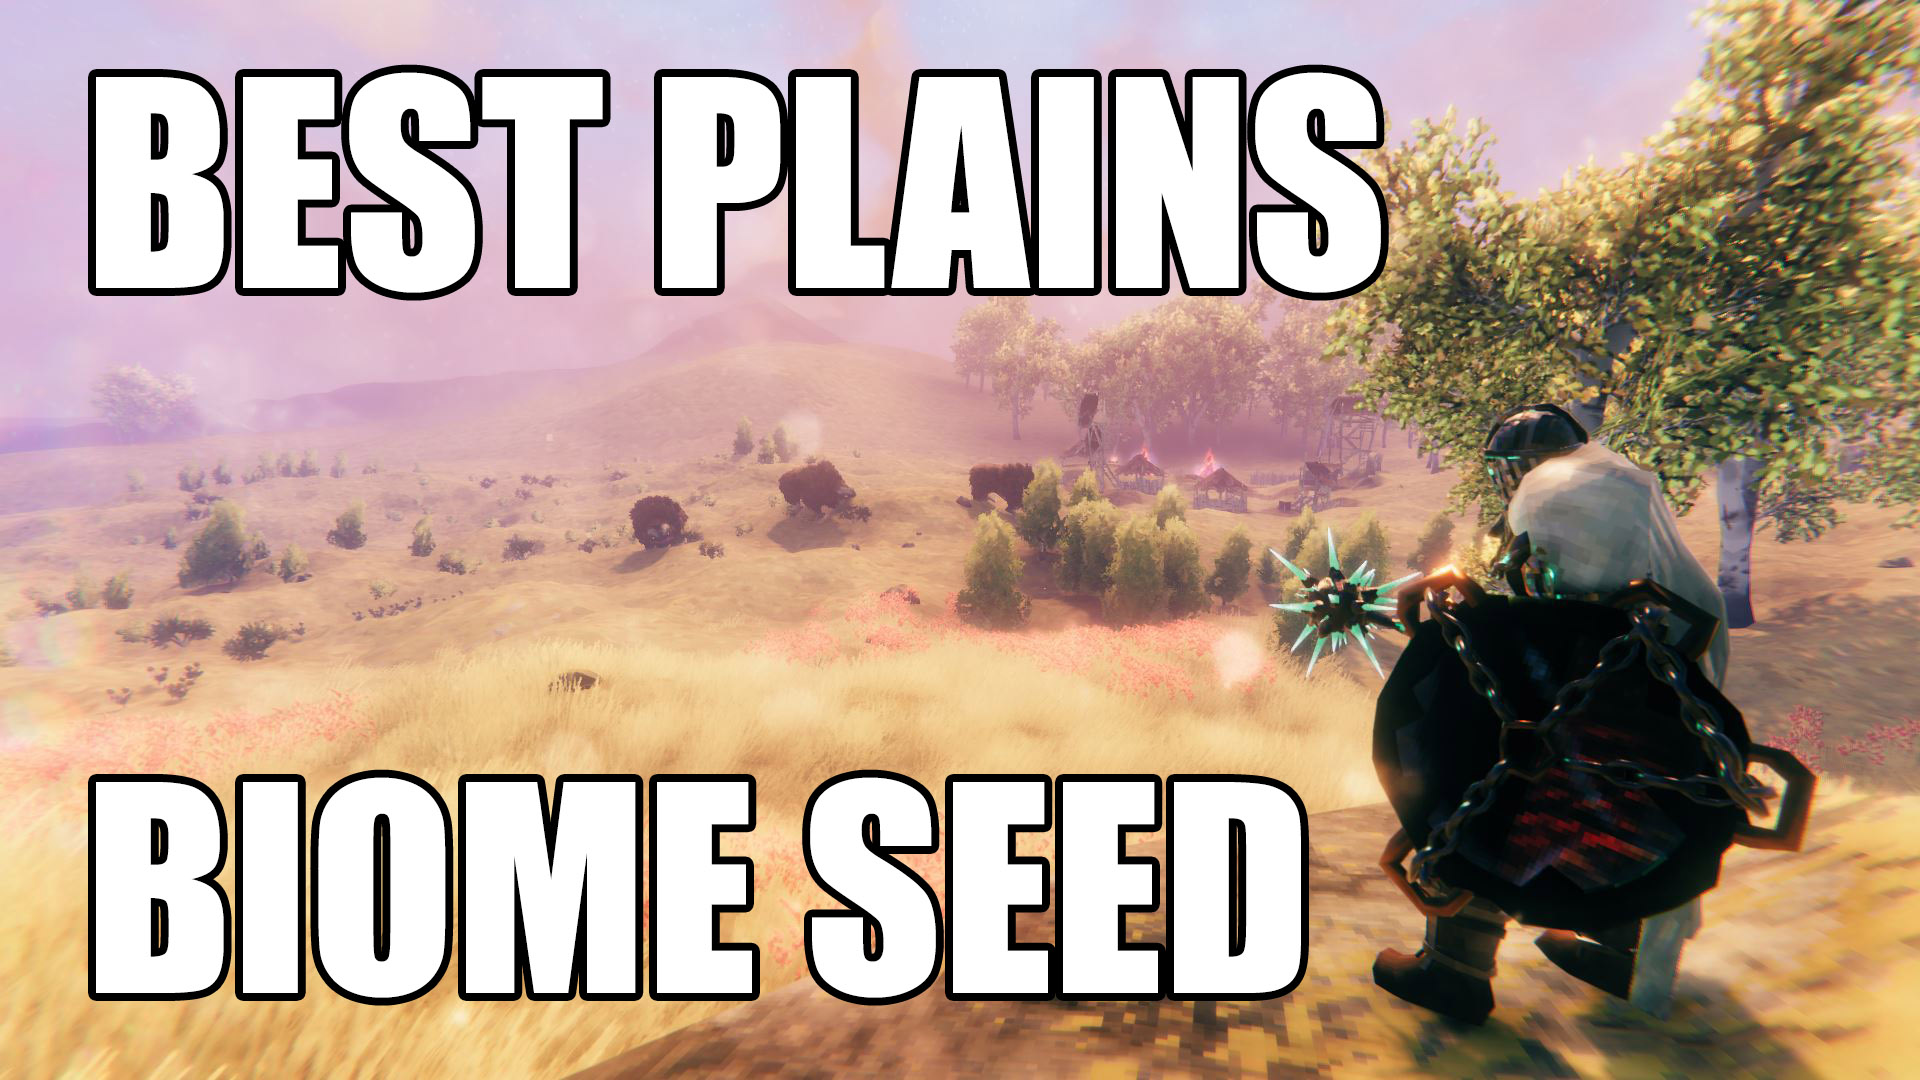 Best Plains Biome Seed